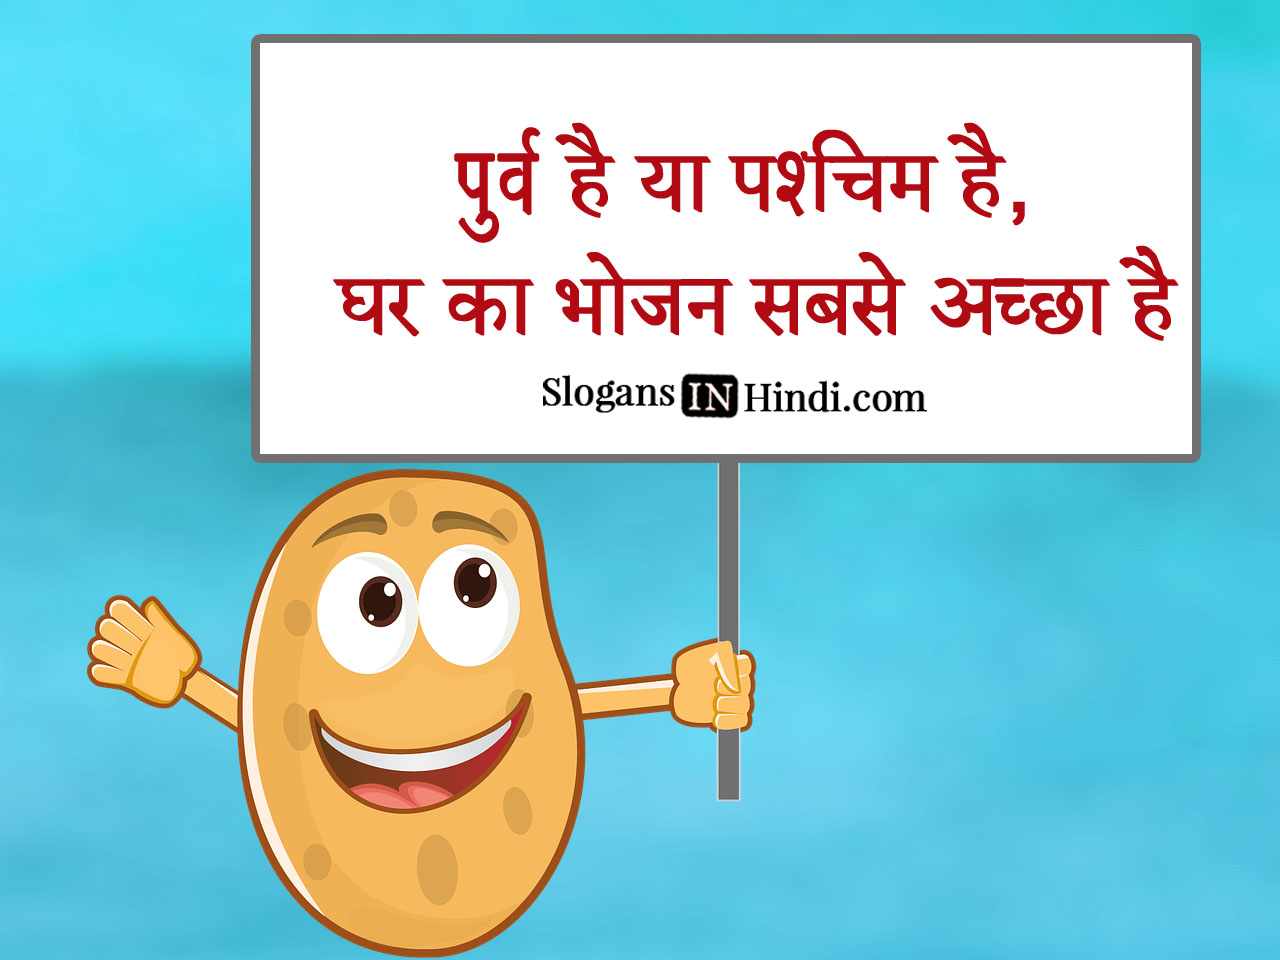 Junk Food Slogans In Hindi